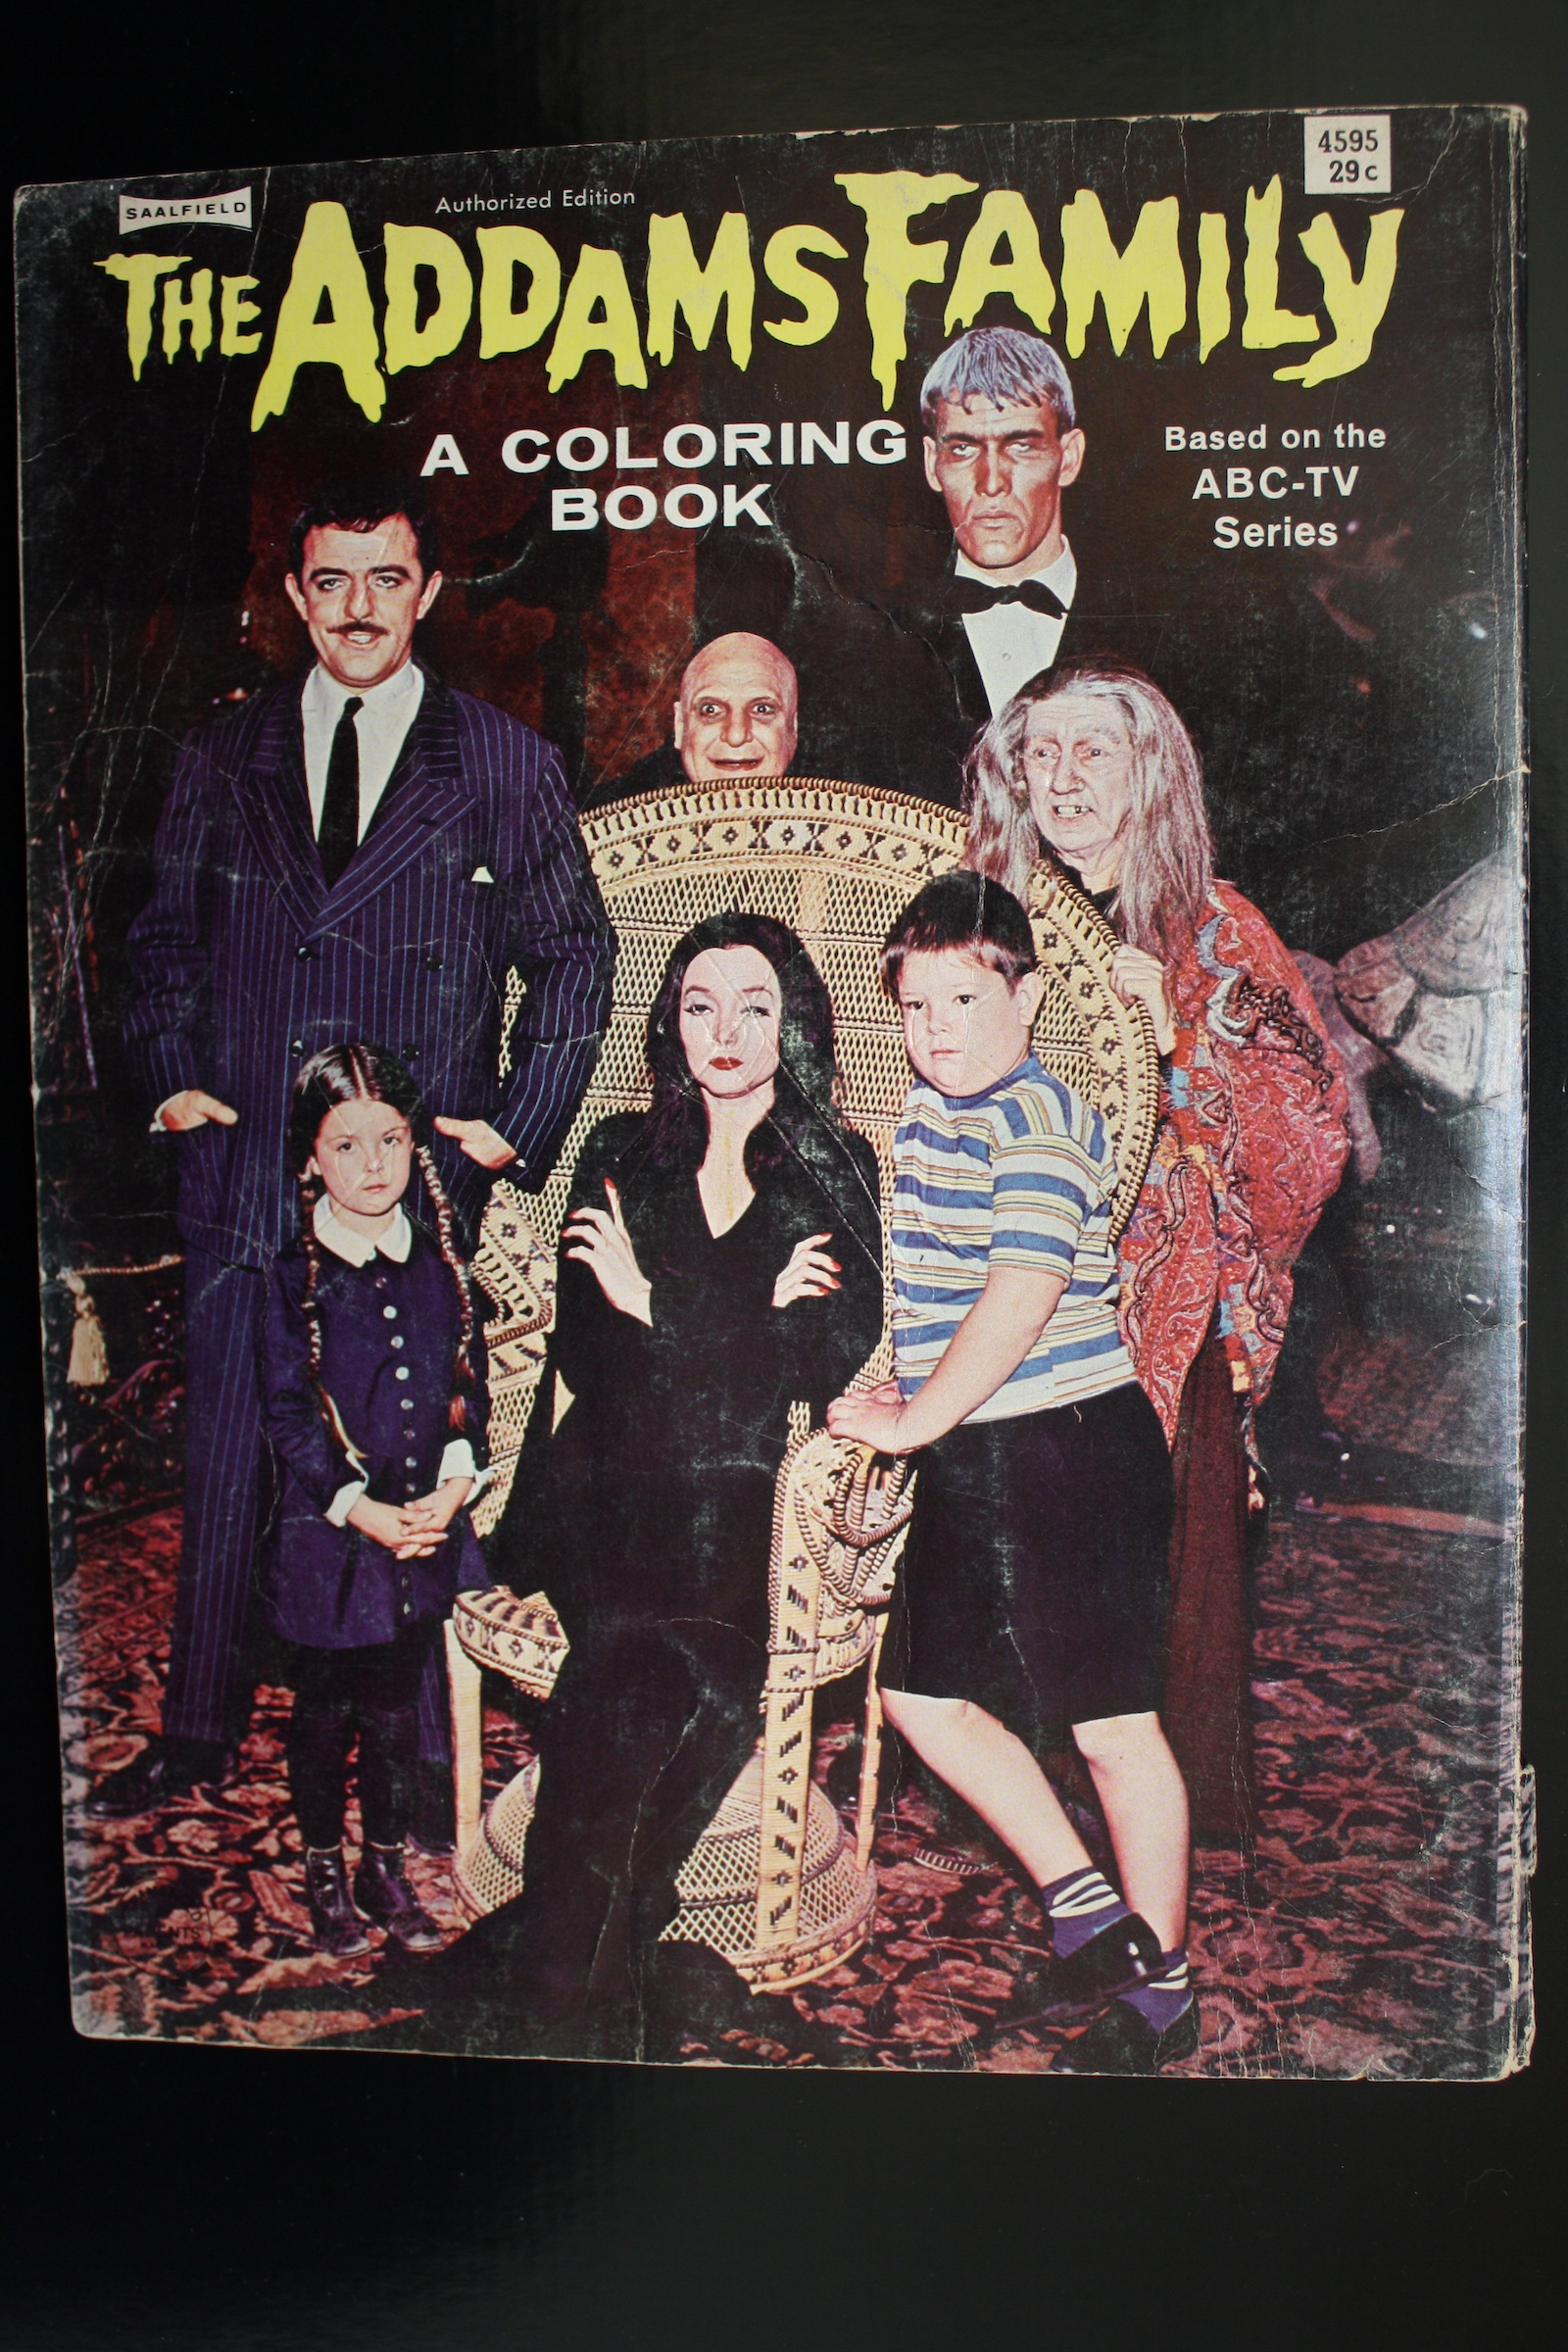 The Addams Family A Coloring Book 1965 Flashbak